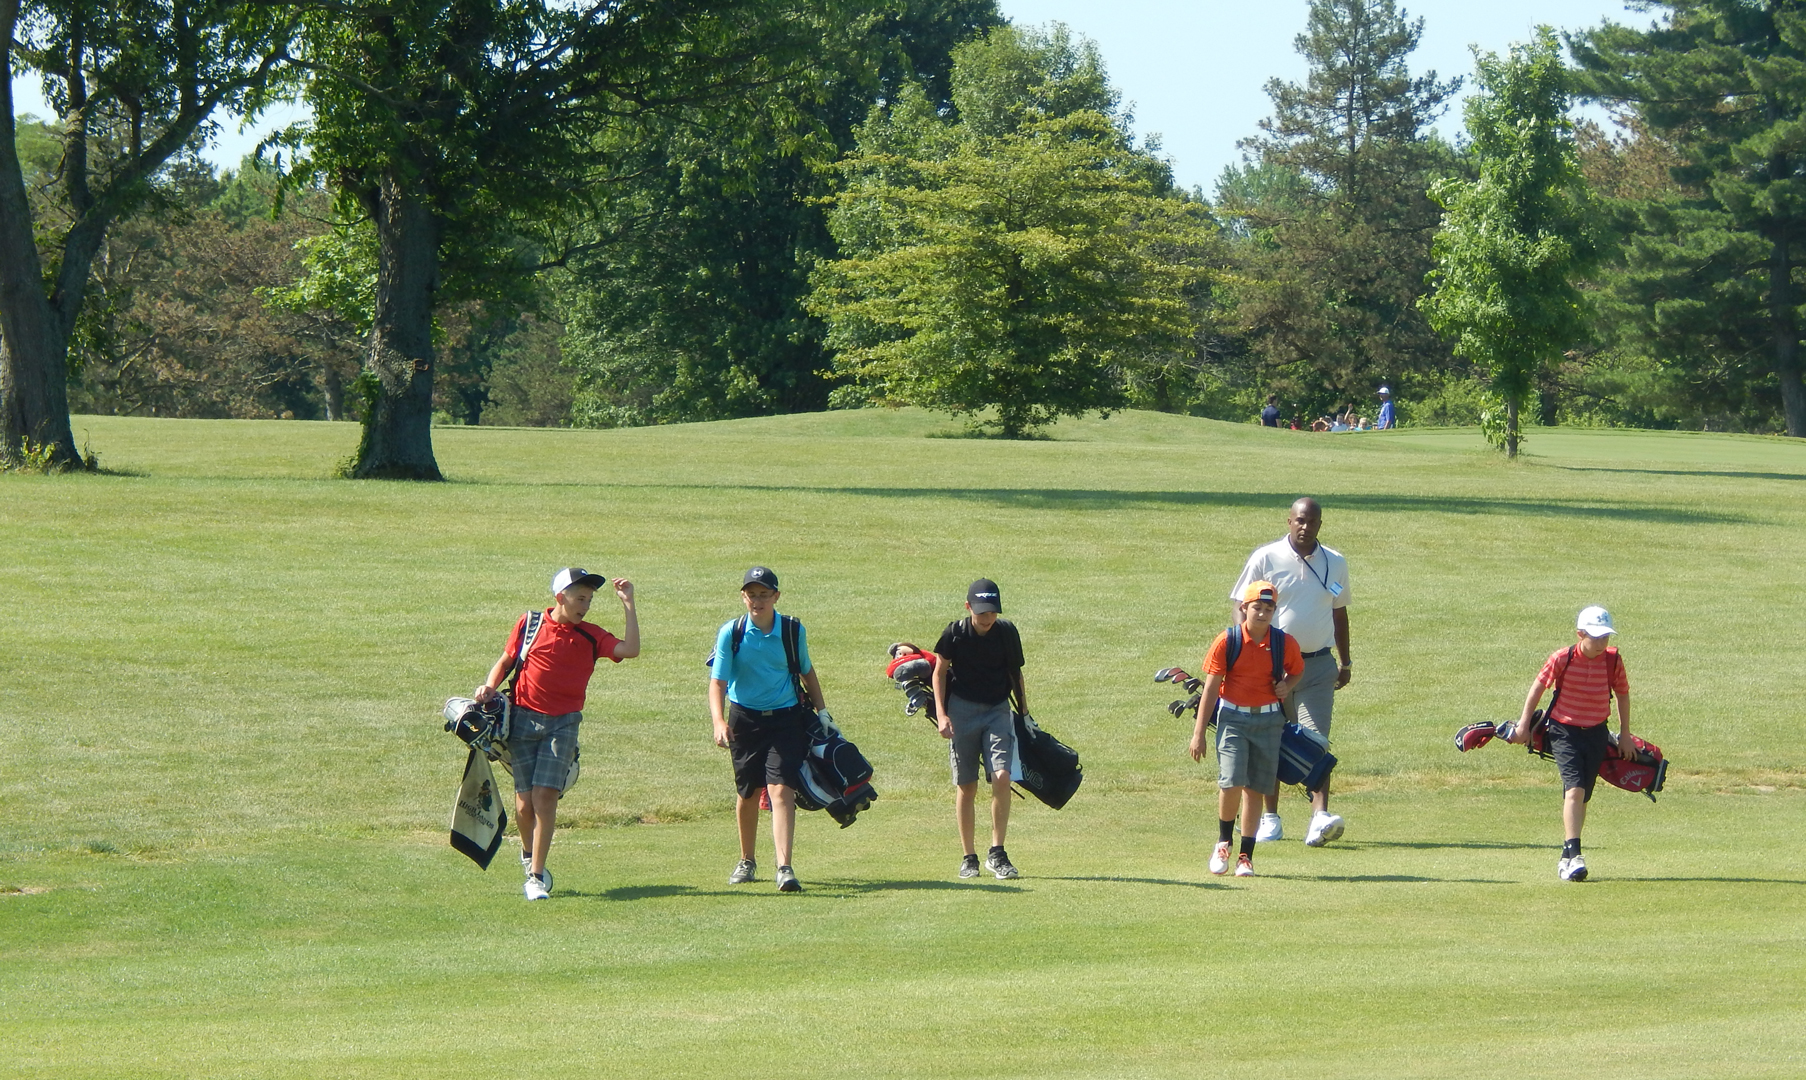 Kids walk the Blacklick Woods Golf Course during a round of golf. Photo by Brandon Ridgley.